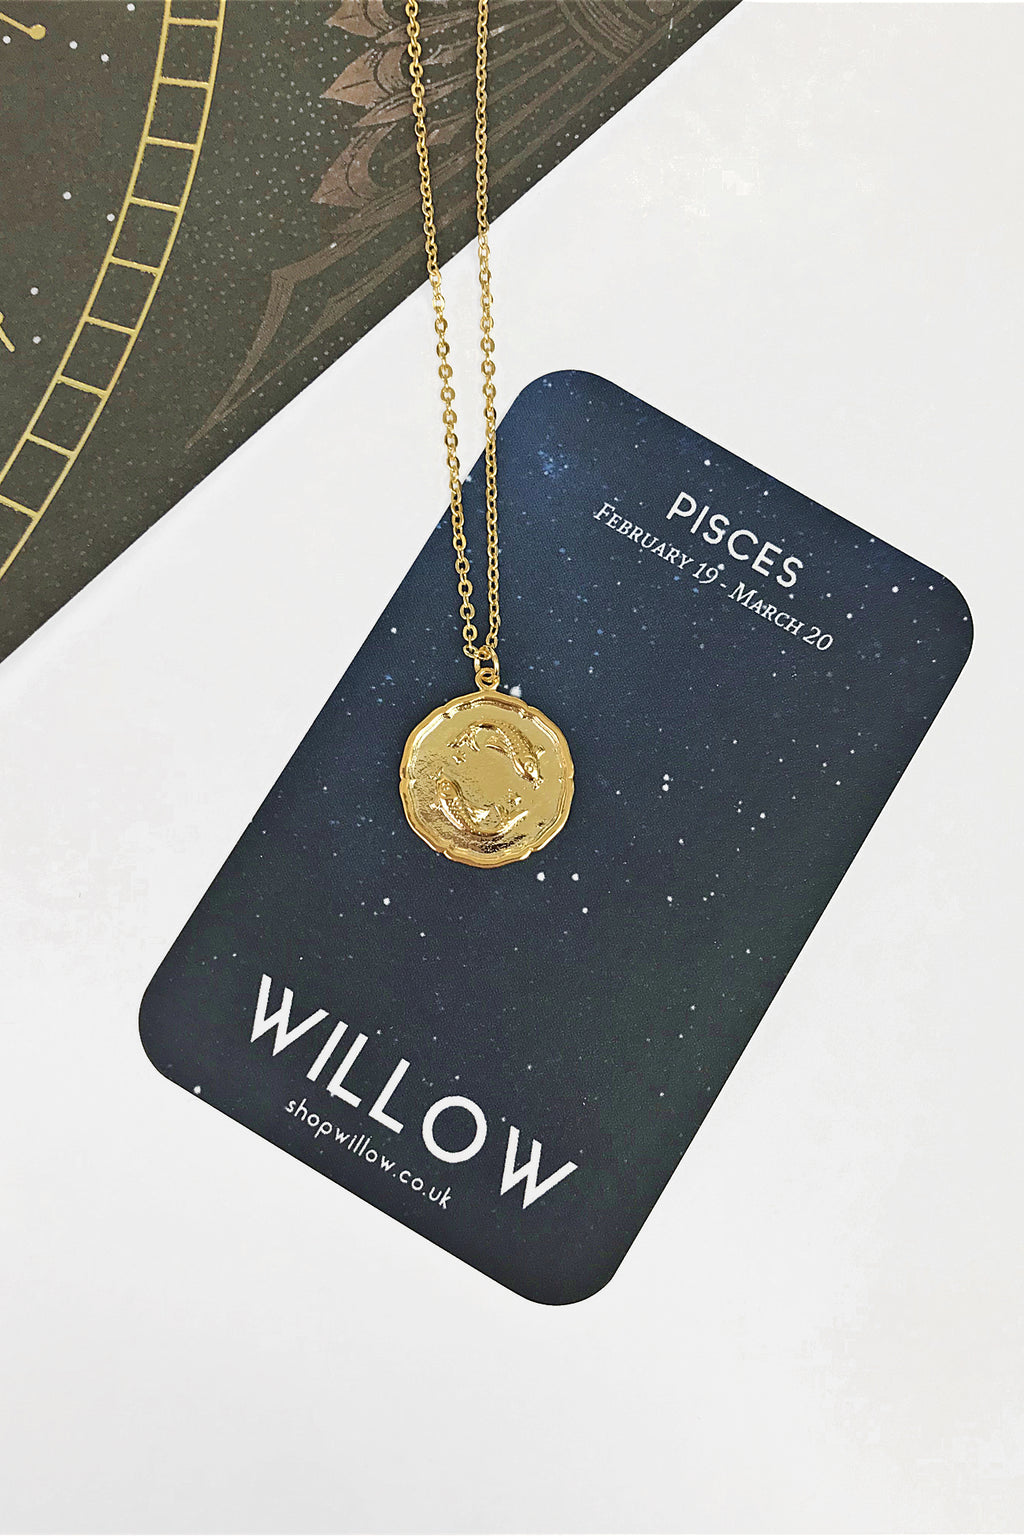 Pisces vintage coin necklace